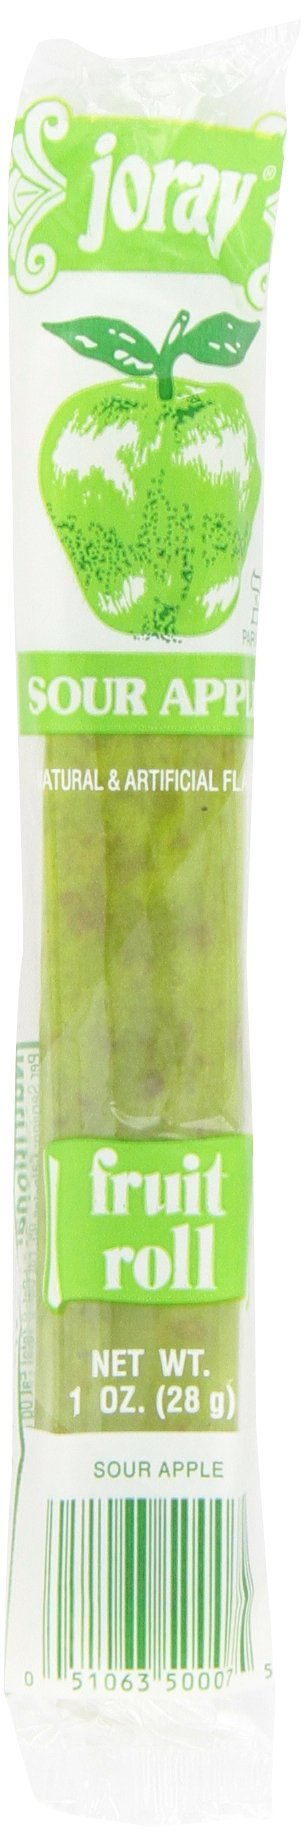 Joray Fruit Roll, Sour Apple, 1-Ounce Units (Pack of 48)